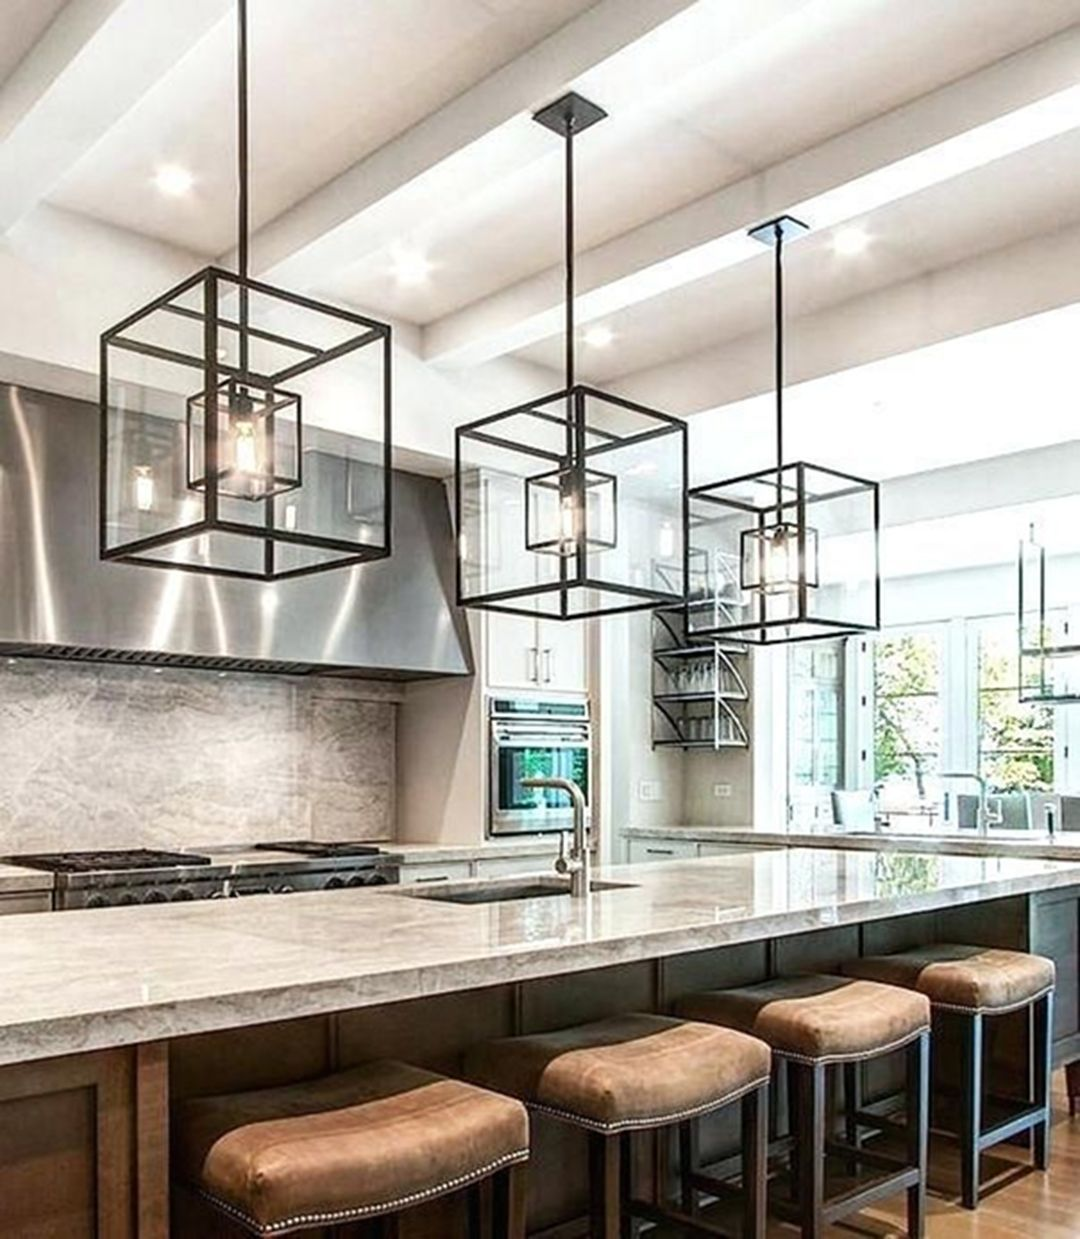 Kitchen Island Pendant Lighting Ideas Http Lvluxhome Net Kitchen Island Penda In 2020 Lighting Fixtures Kitchen Island Small Kitchen Lighting Interior Light Fixtures